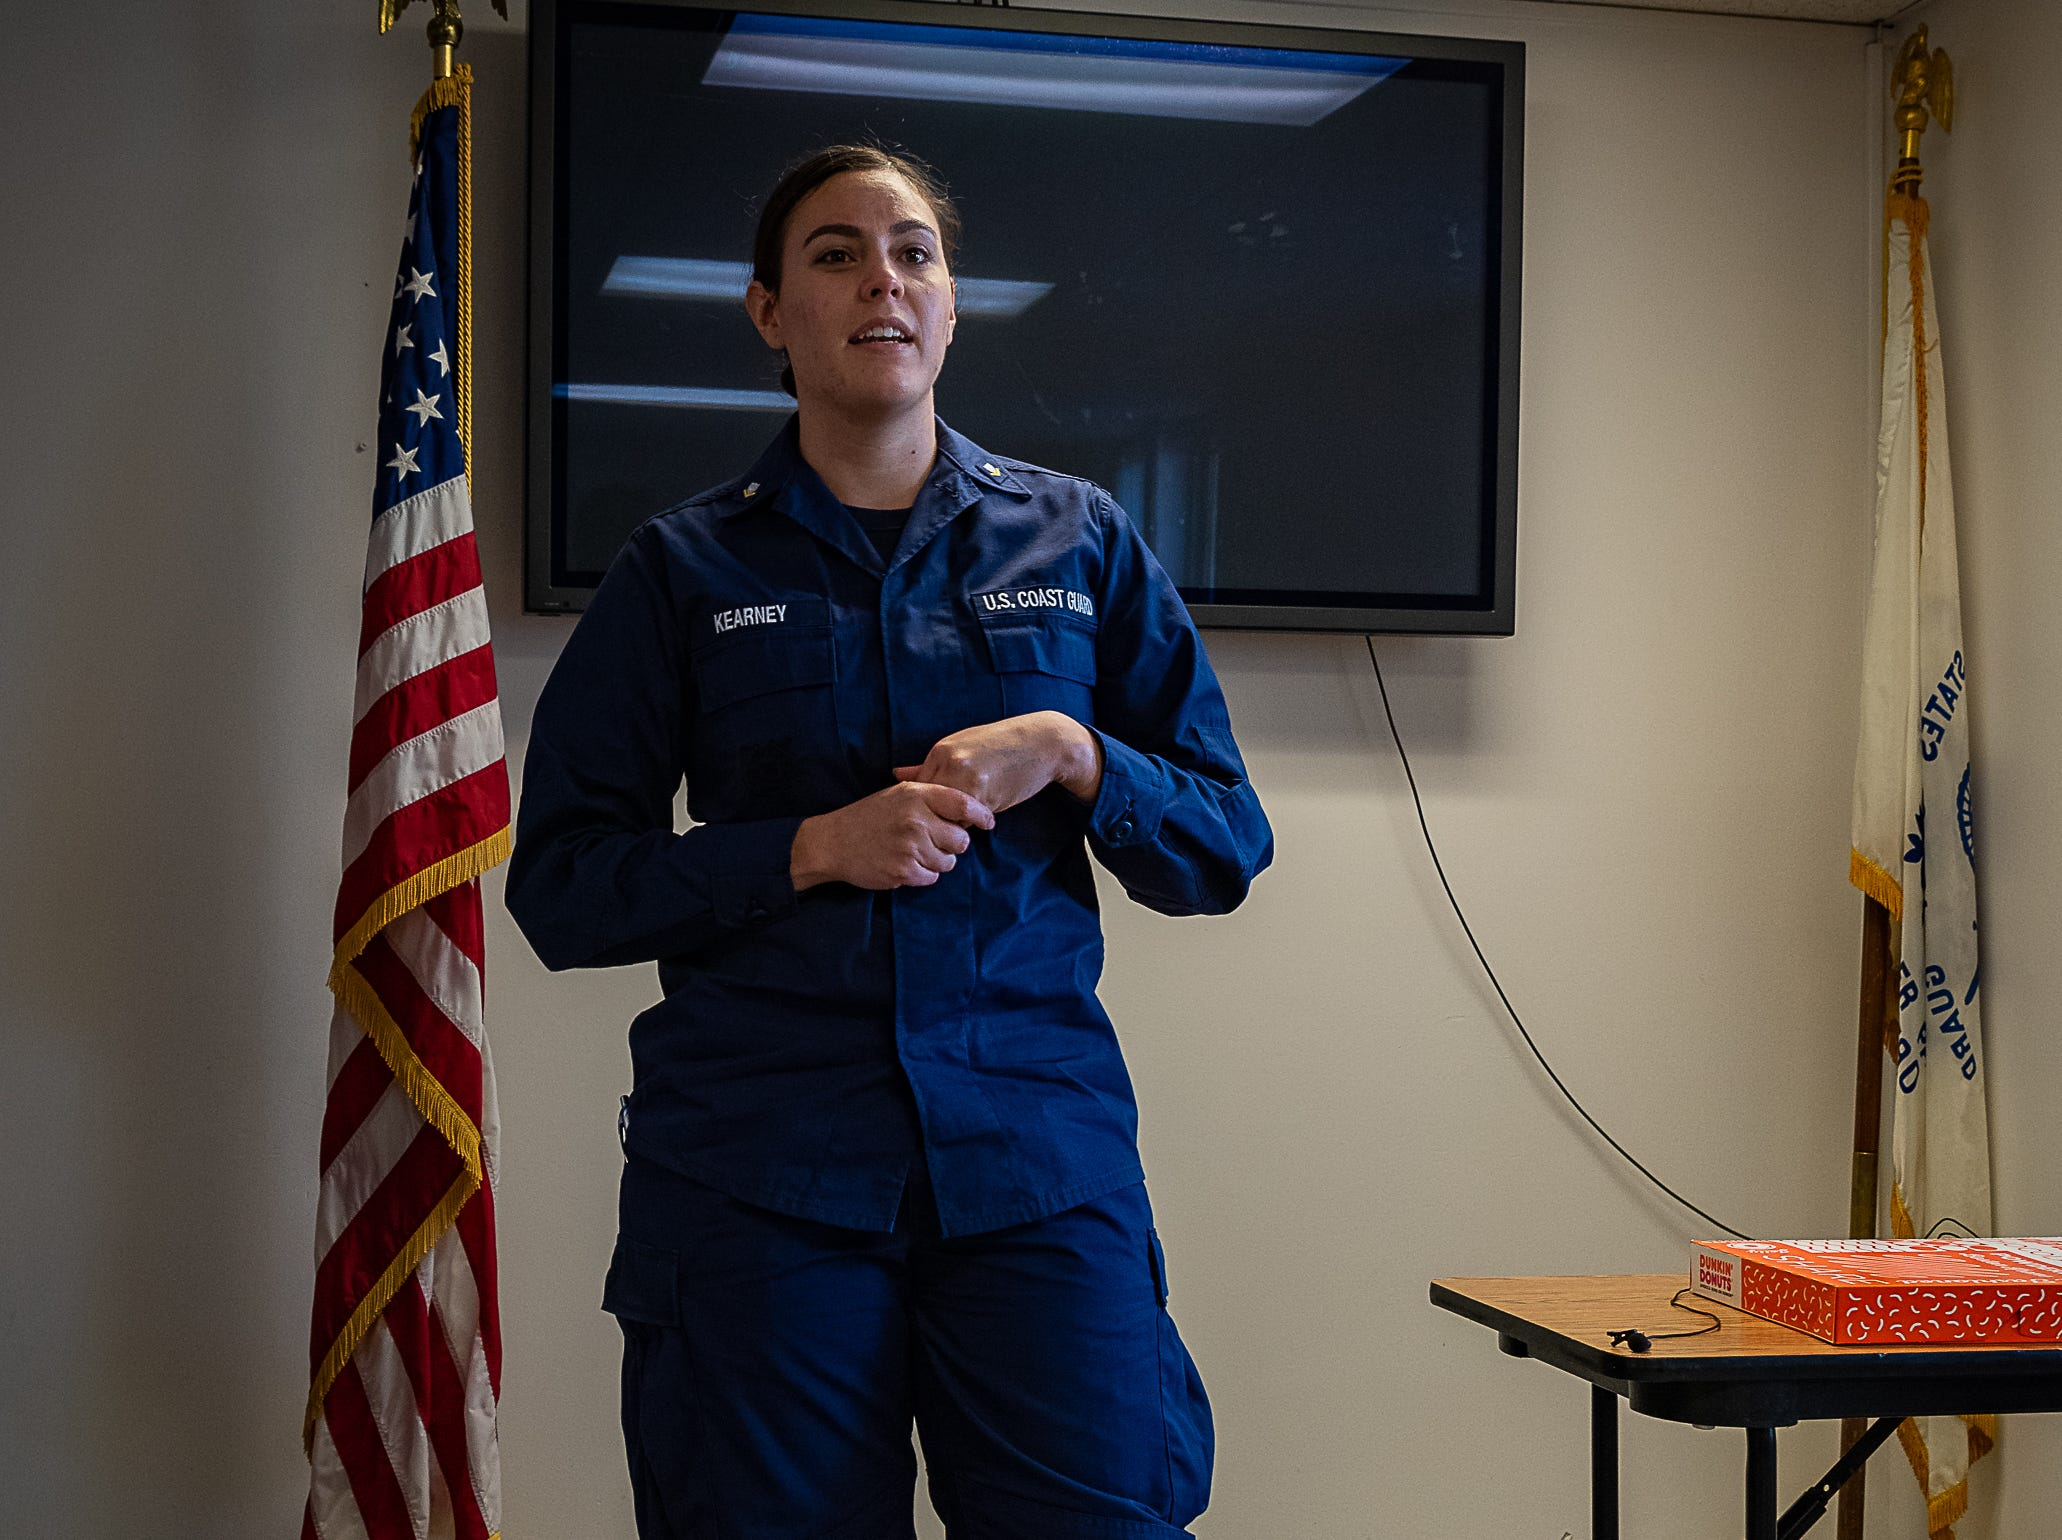 Petty Officer 3rd Class Shannon Kearney, a member of the U.S. Coast Guard Station Portsmouth Public Affairs Office, offers a quick briefing before embarking on a cold-water survival demonstration in Cape Charles, Virginia, on Tuesday, Oct. 30, 2018.